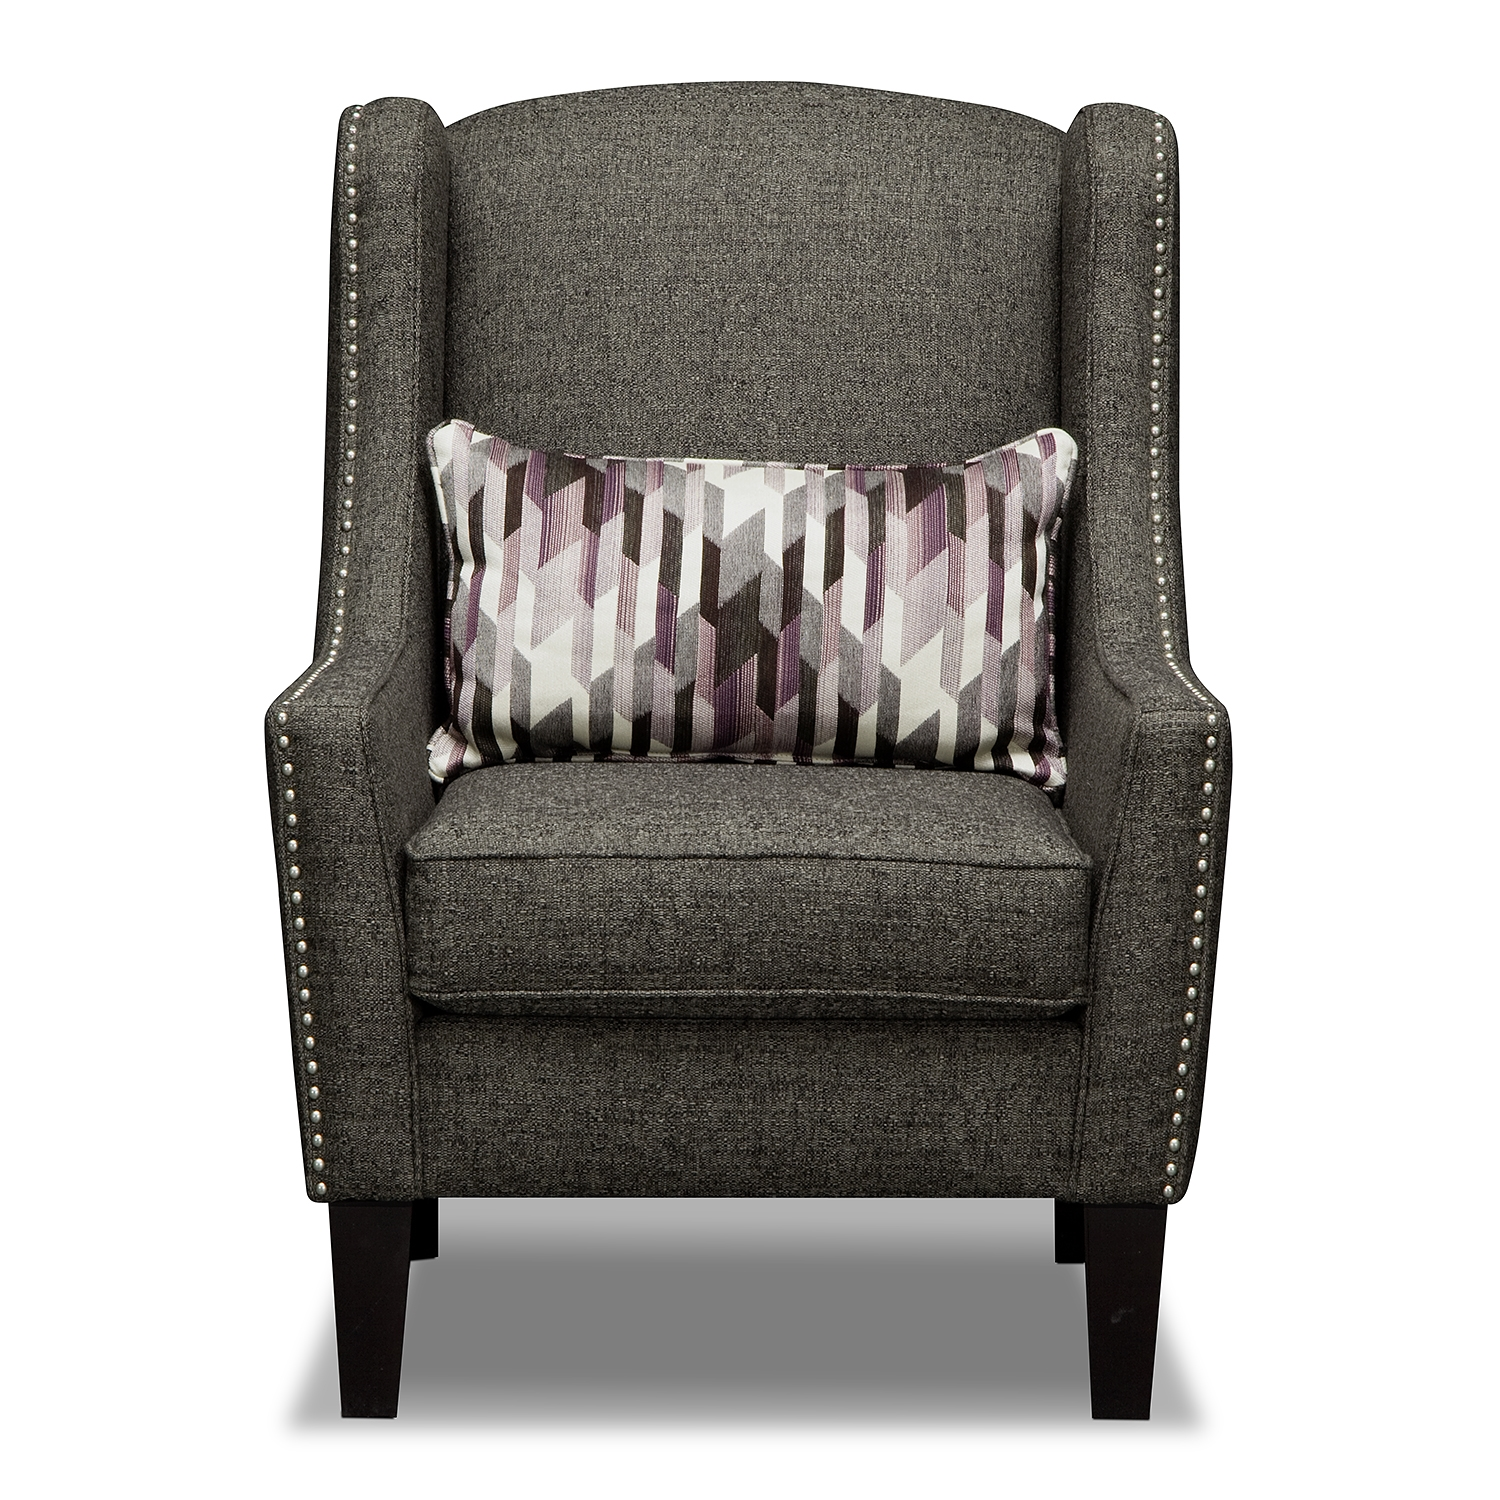 Interesting Accent Chair For Home Furniture Ideas With Accent Chairs With Arms And Accent Chairs For Living Room